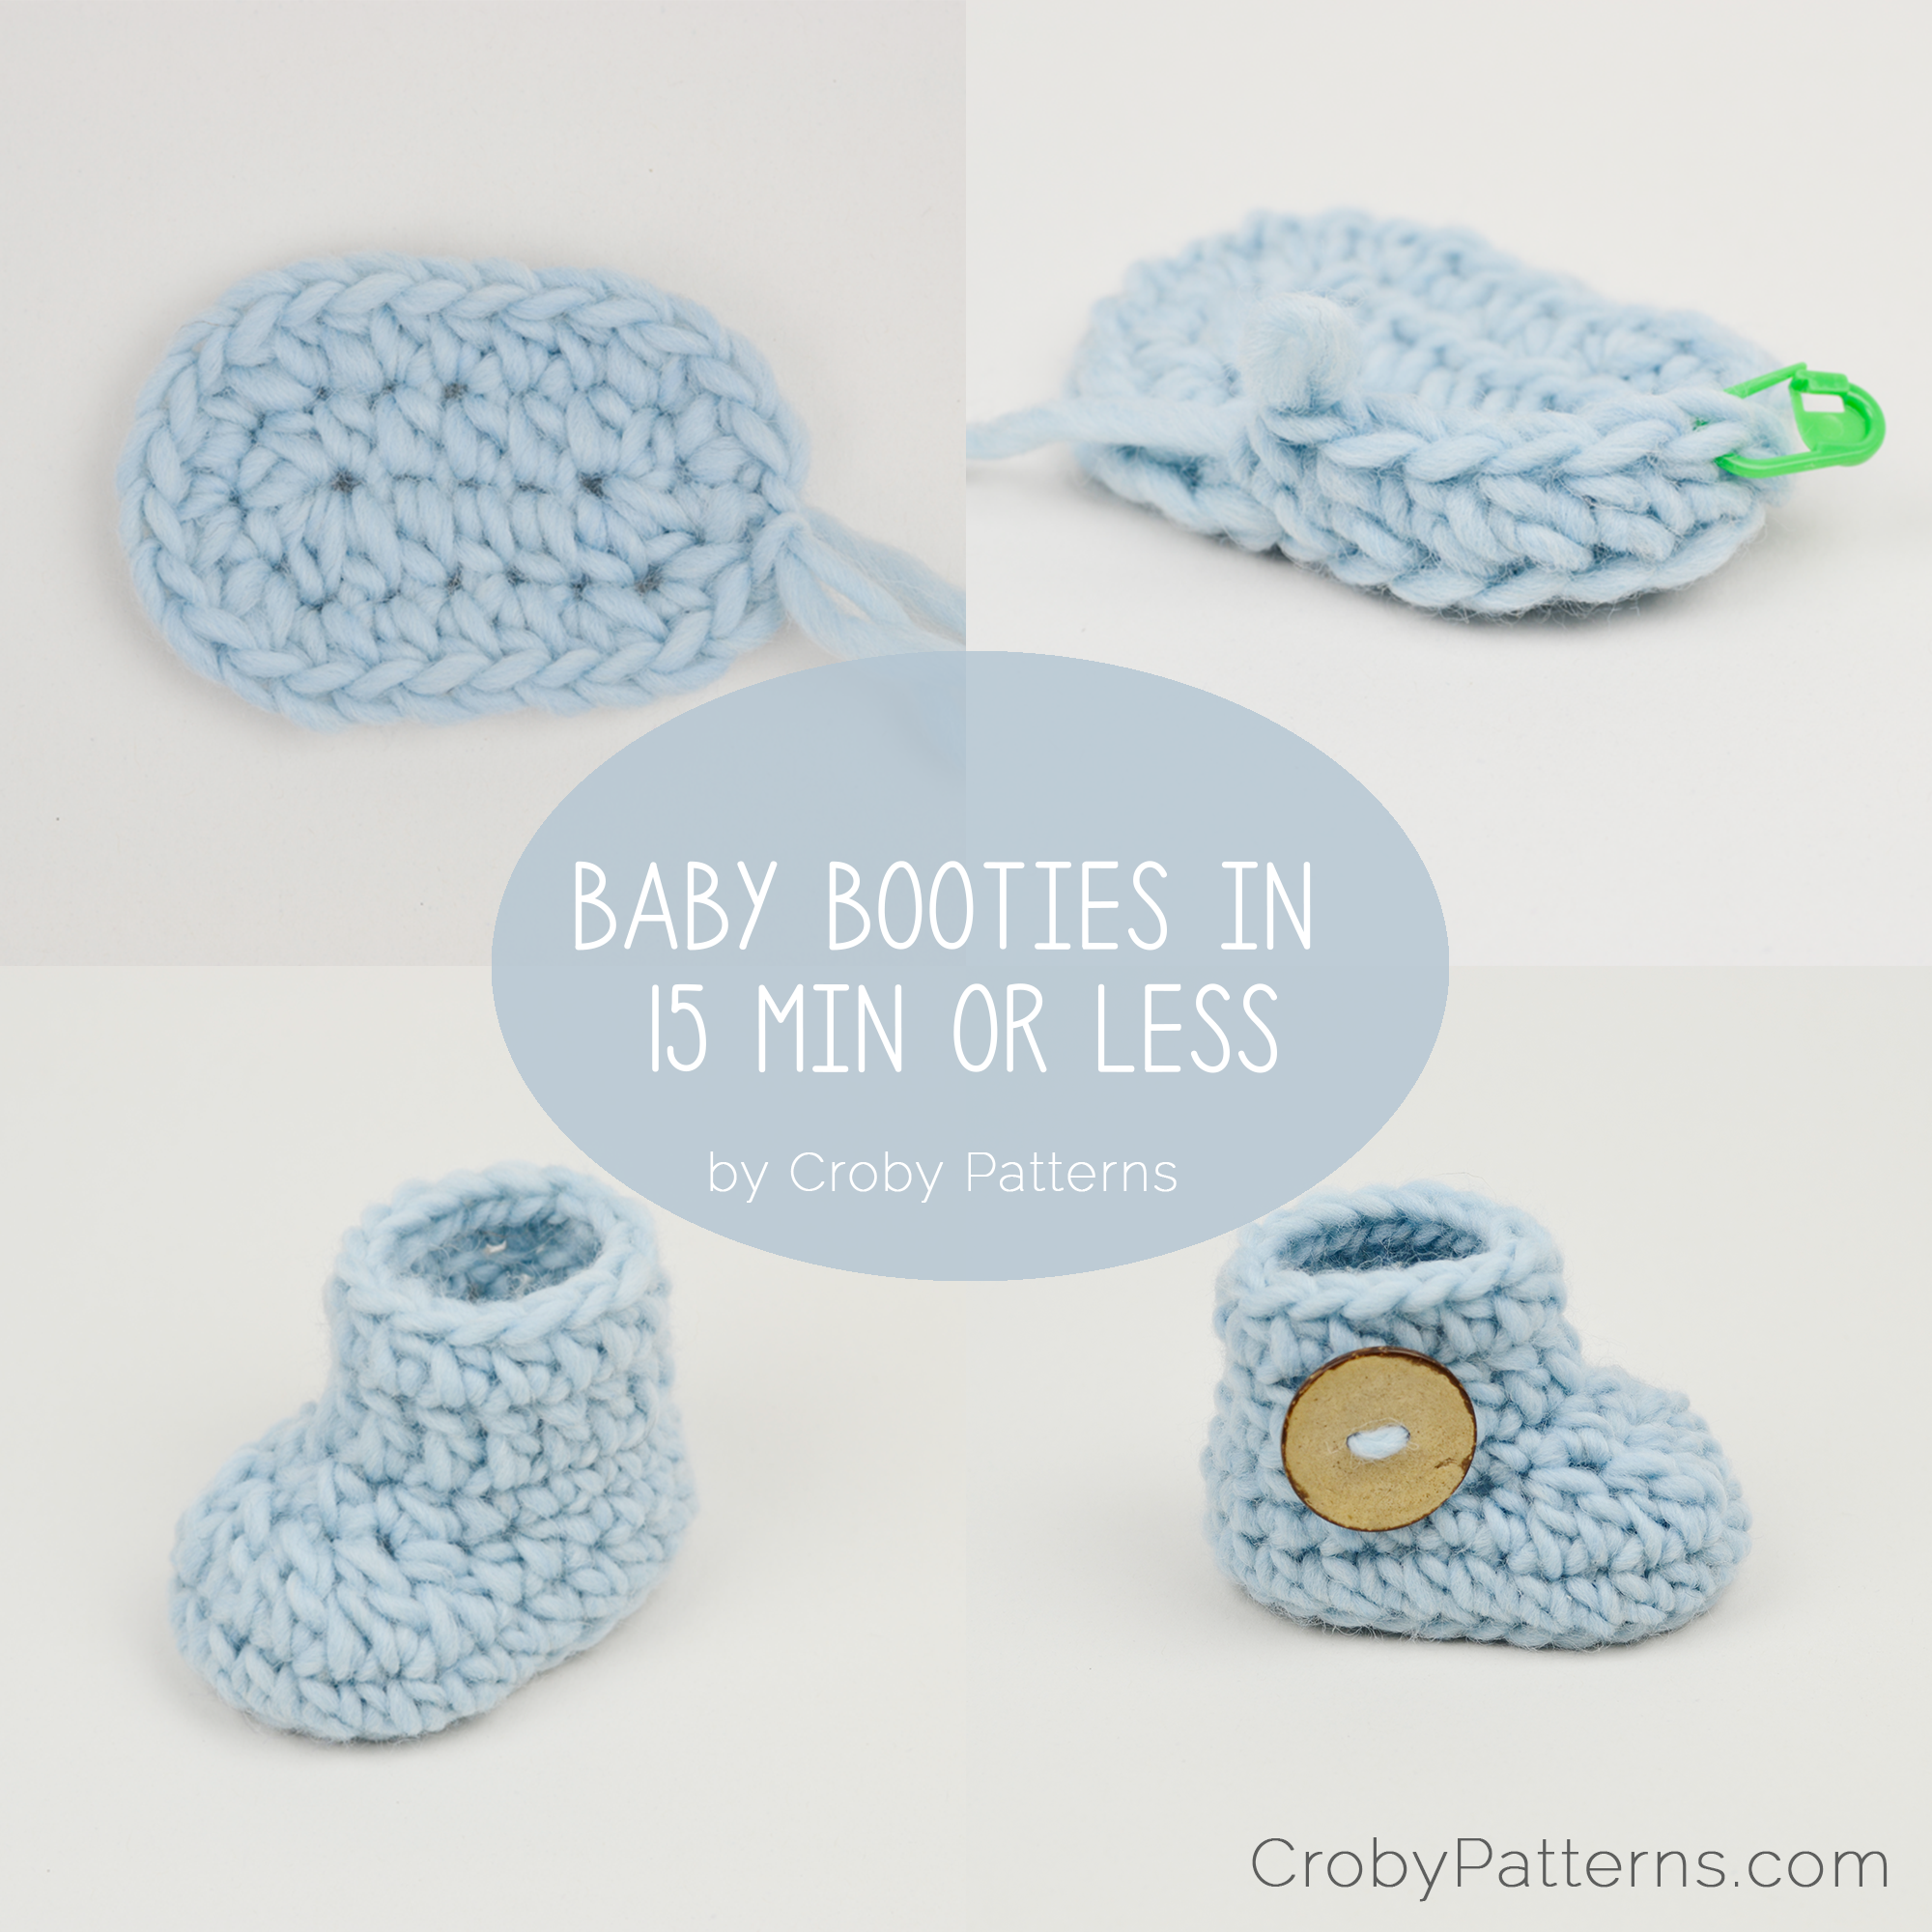 Baby Booties in 15 min or less by Croby Patterns | Crochet - Baby ...